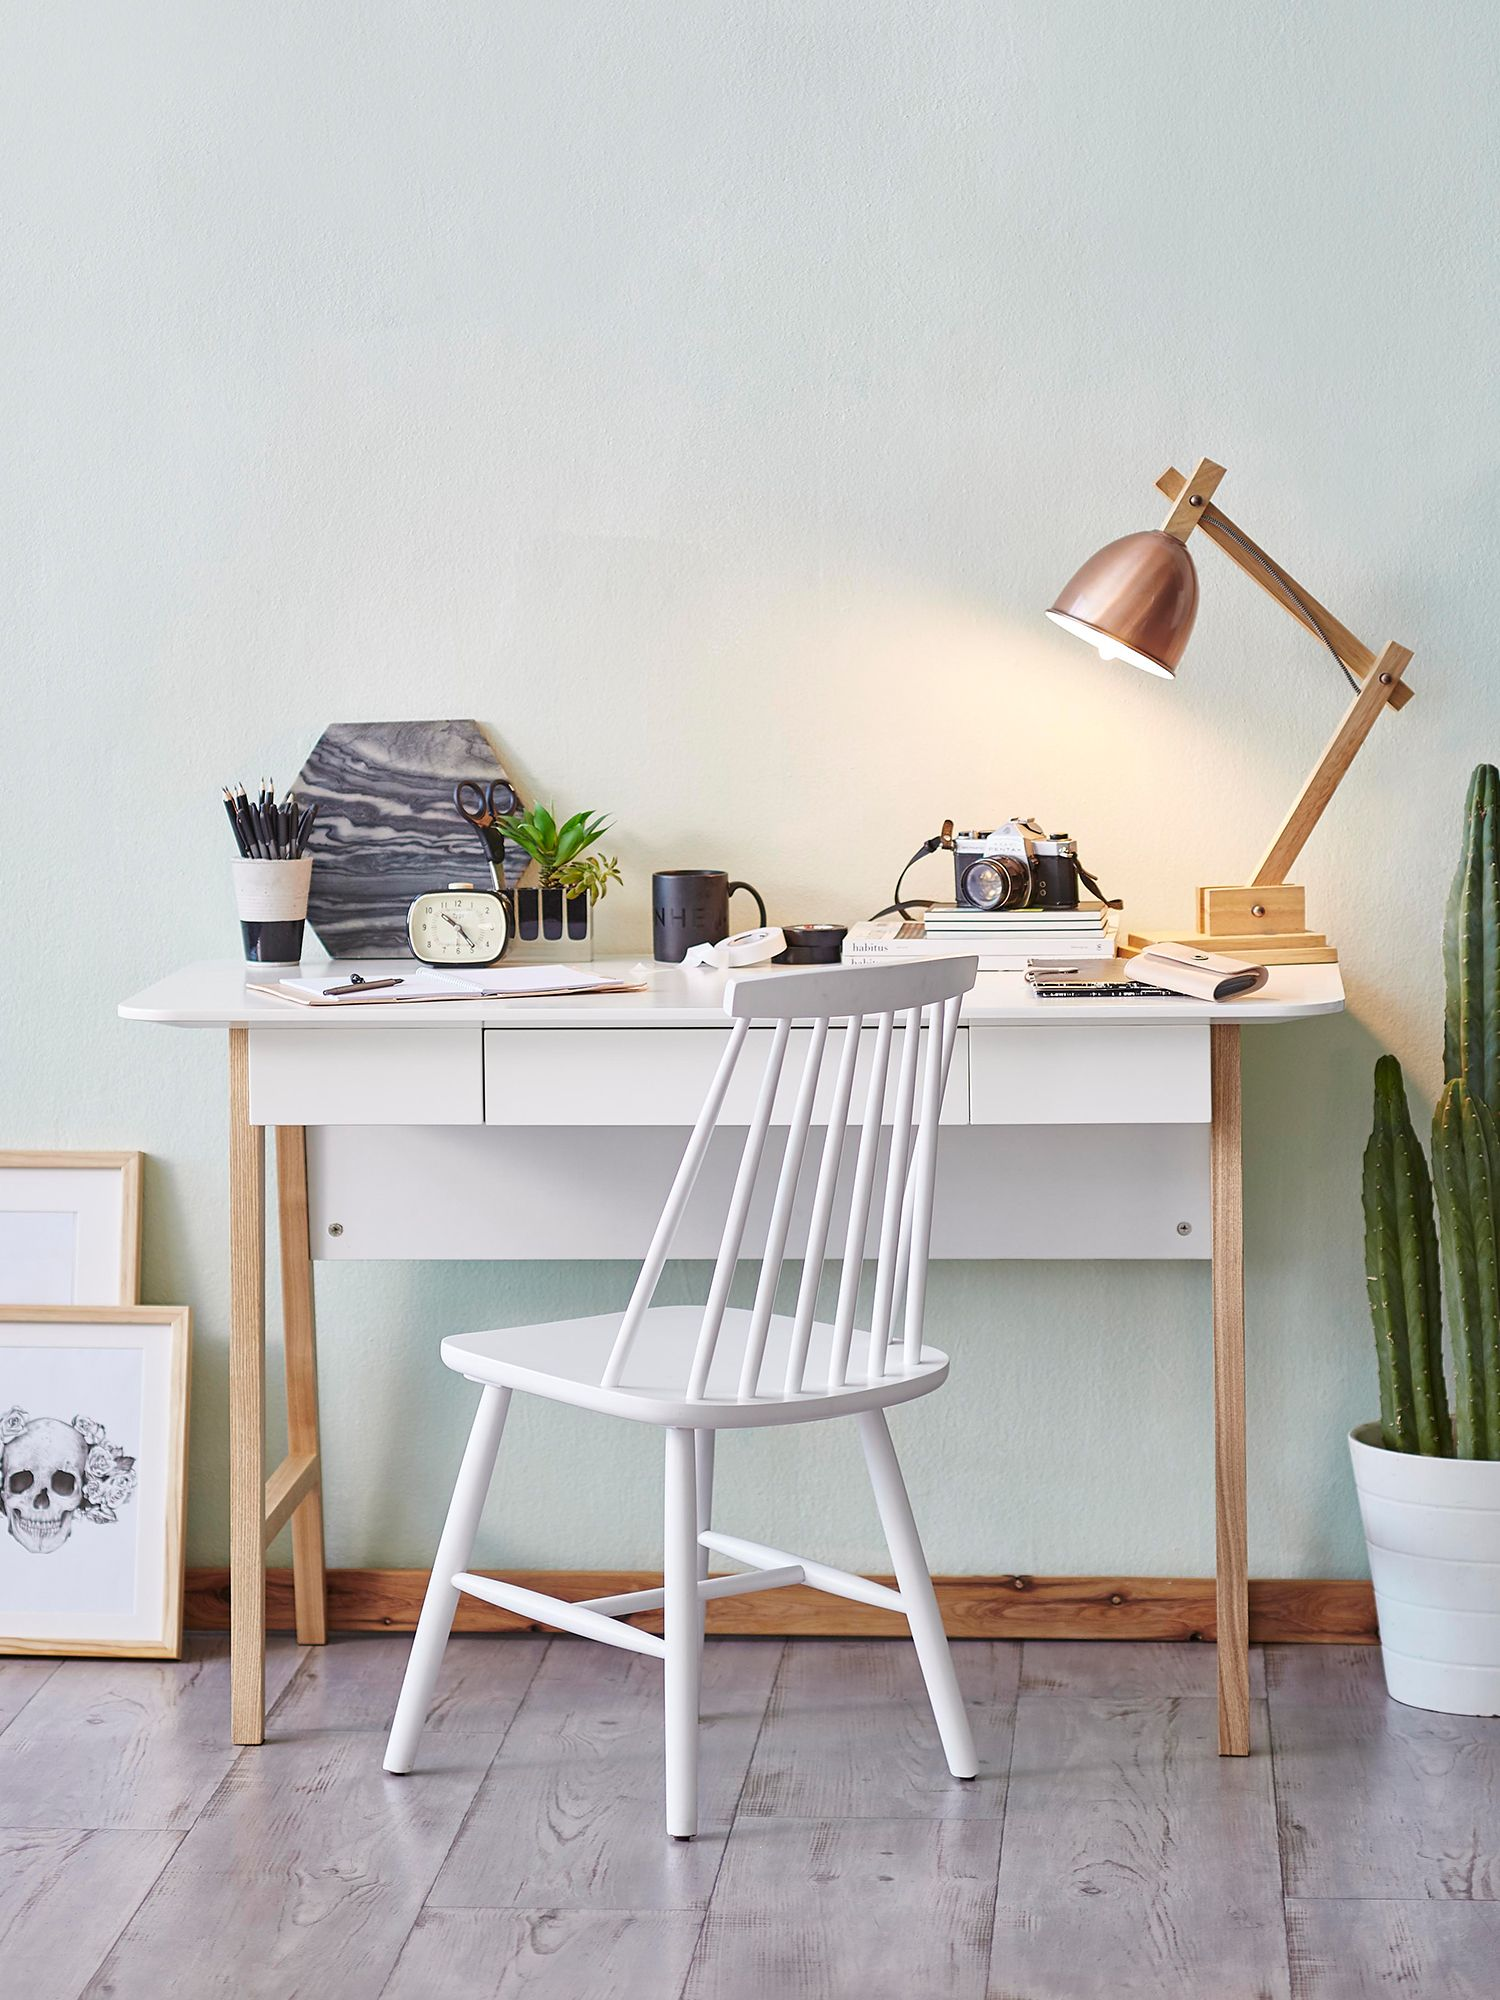 8 ways to add work-friendly elements to your home | Хочу такие фото ...